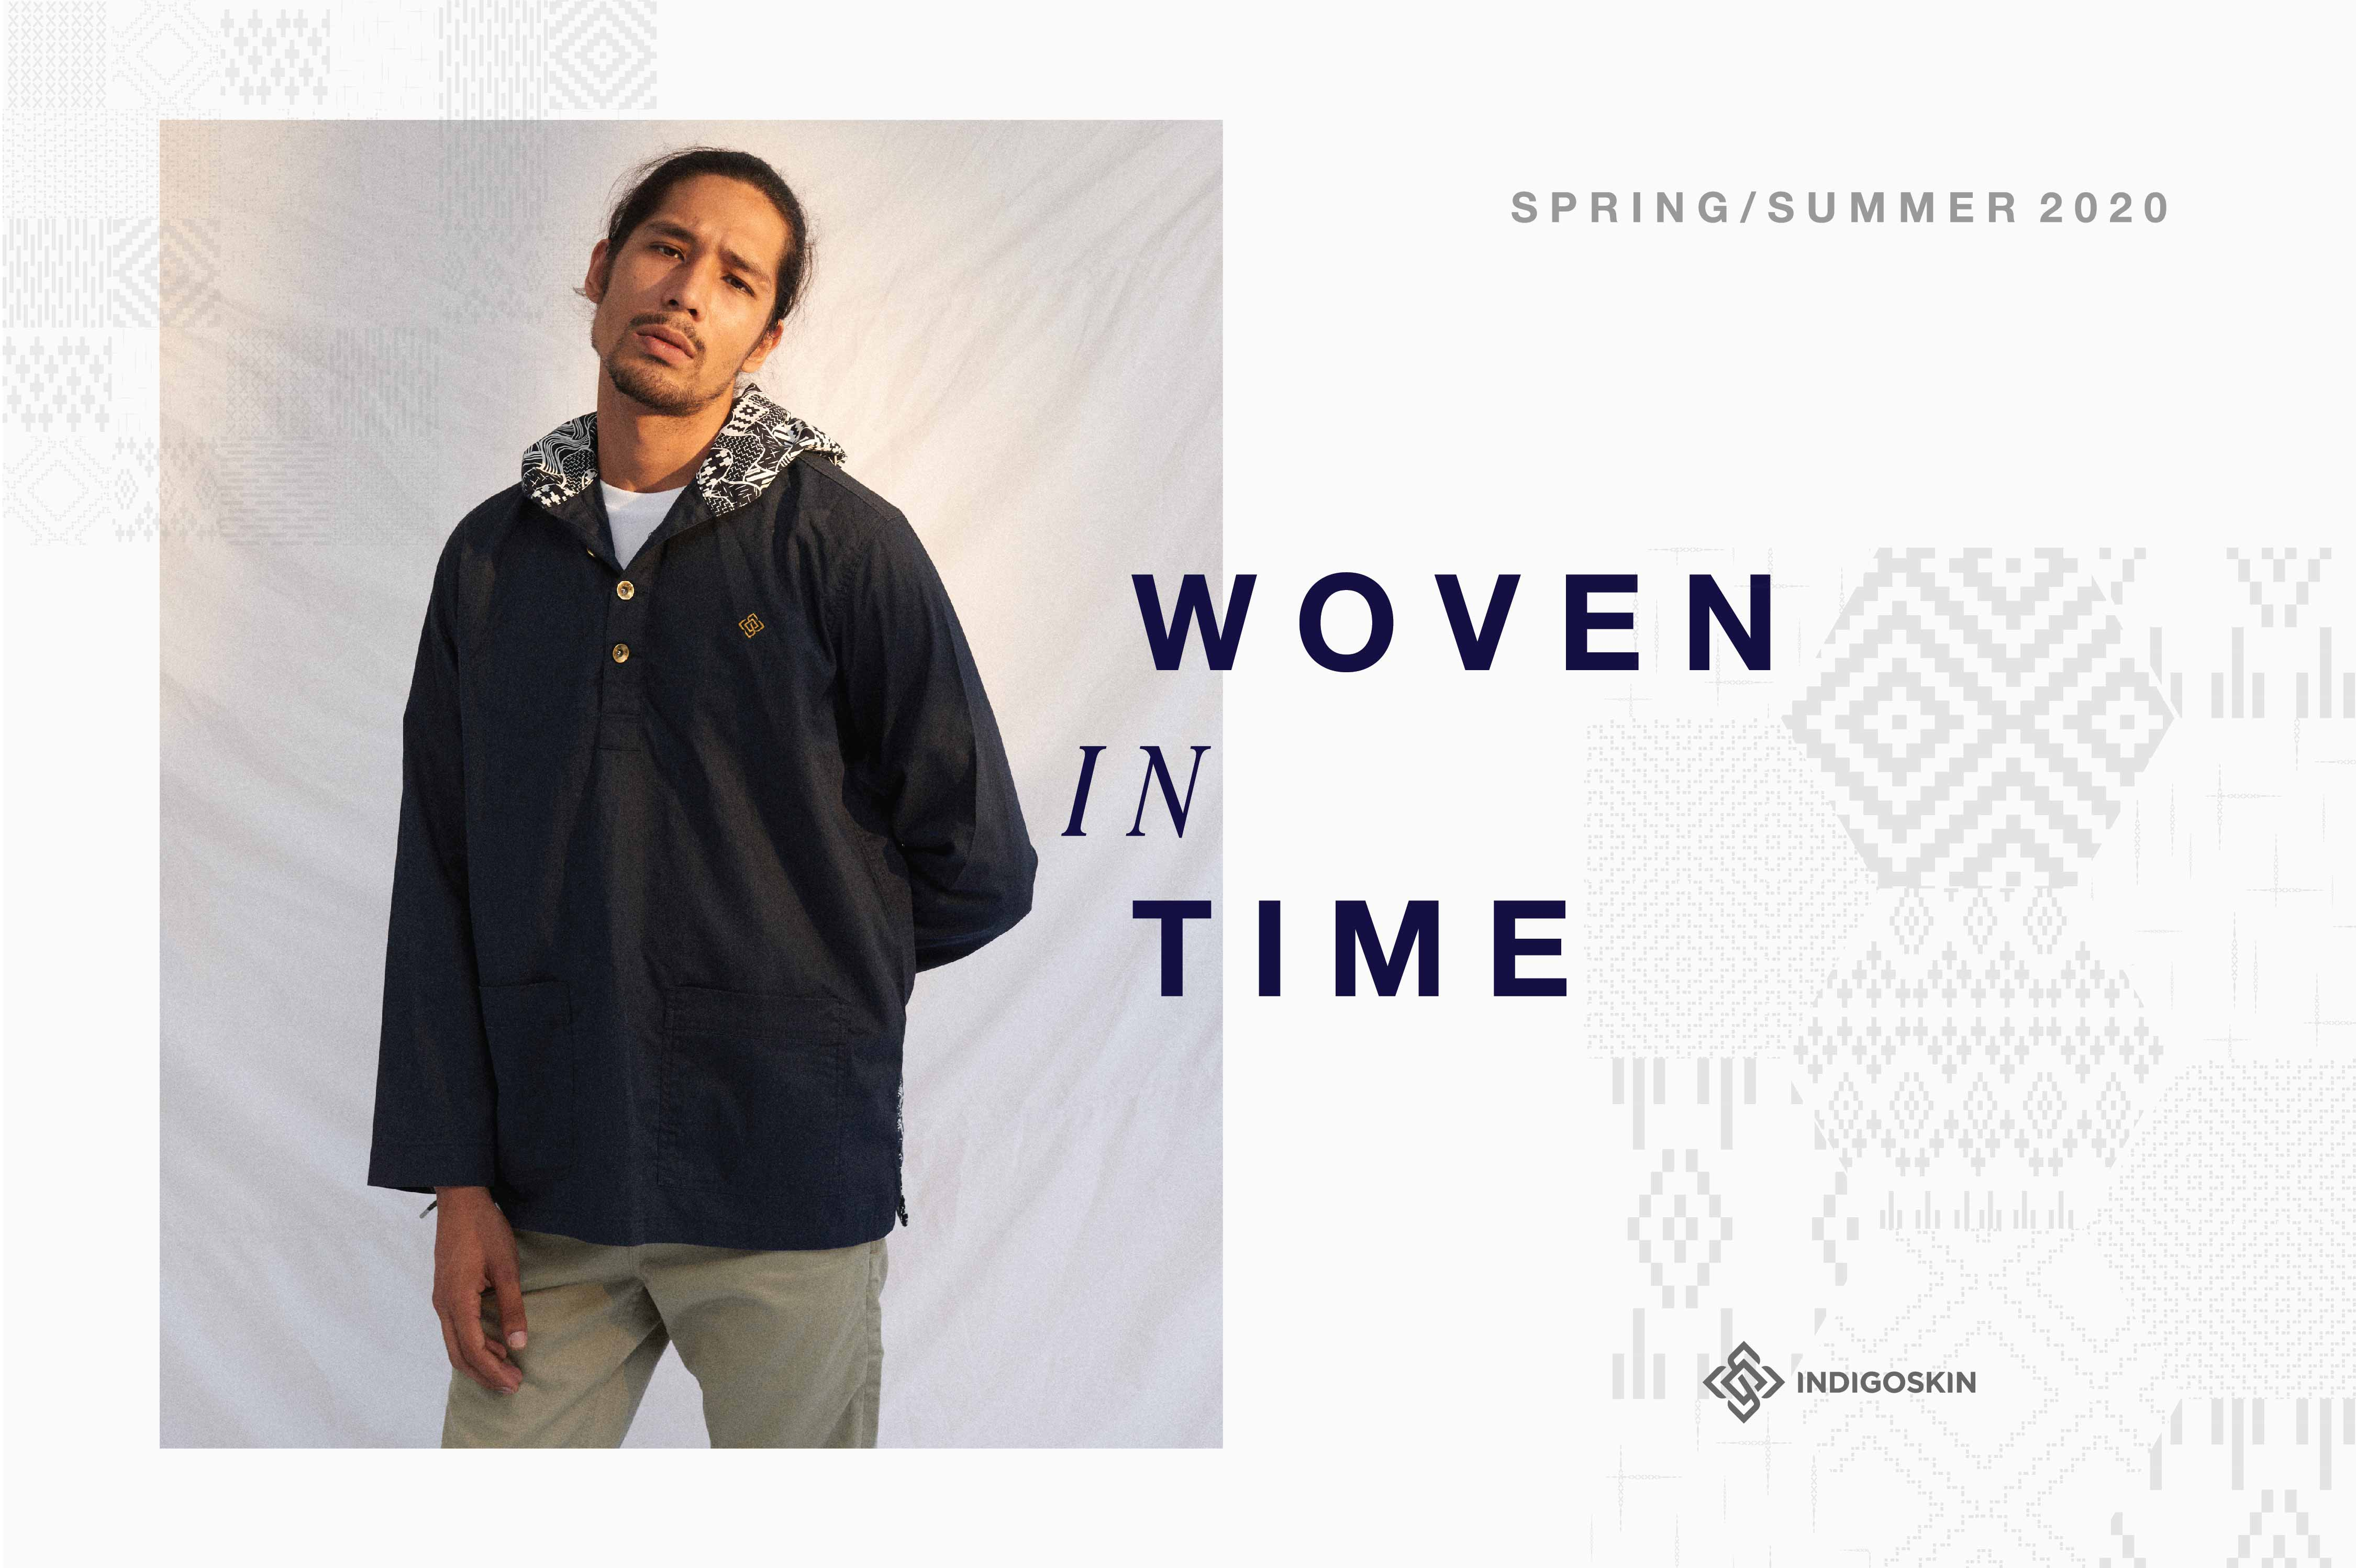 """SPRING/SUMMER 2020 """"Woven in Time"""" Lookbook"""